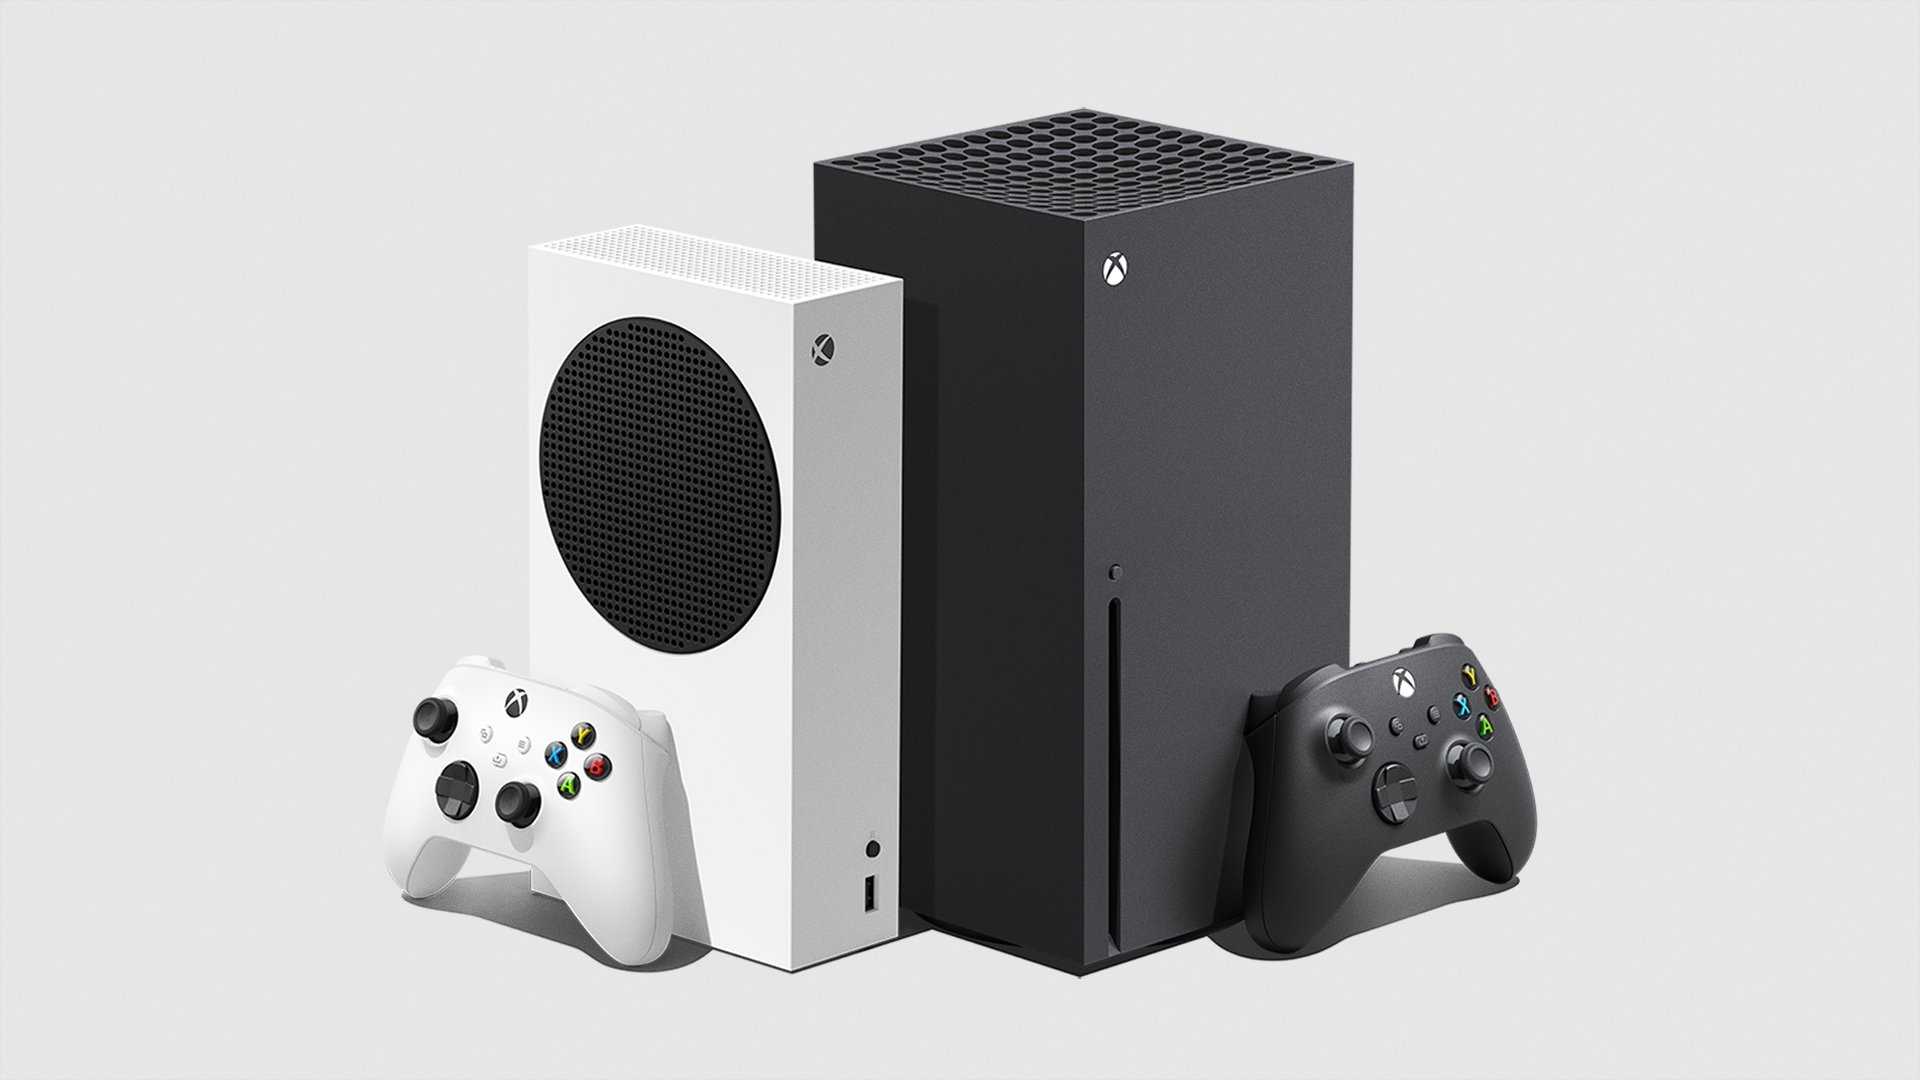 Price of New Xbox series announced for India